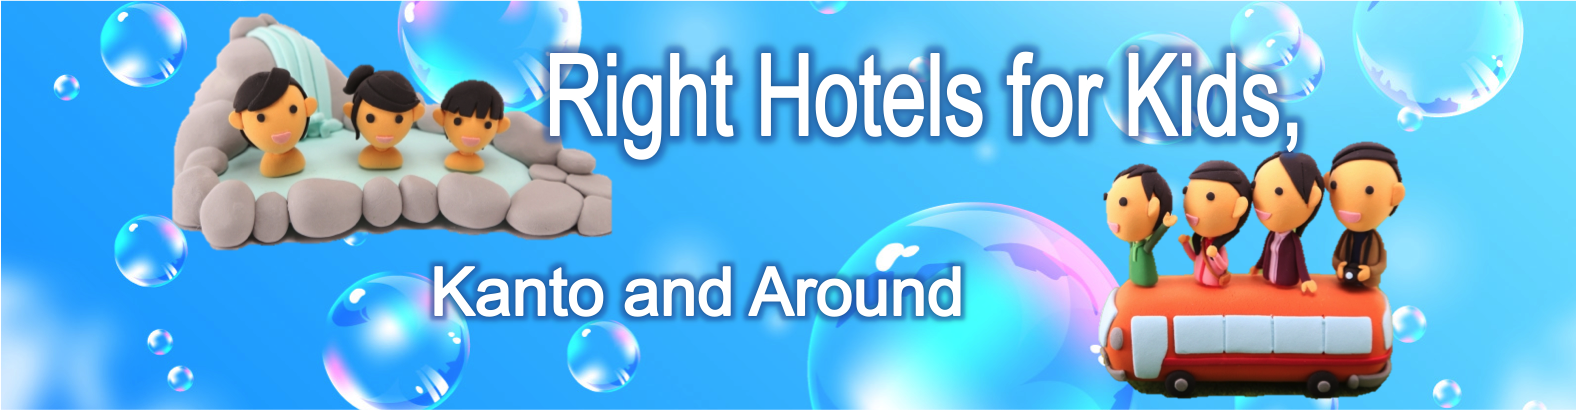 Right Hotels for Kids, Kanto and Around